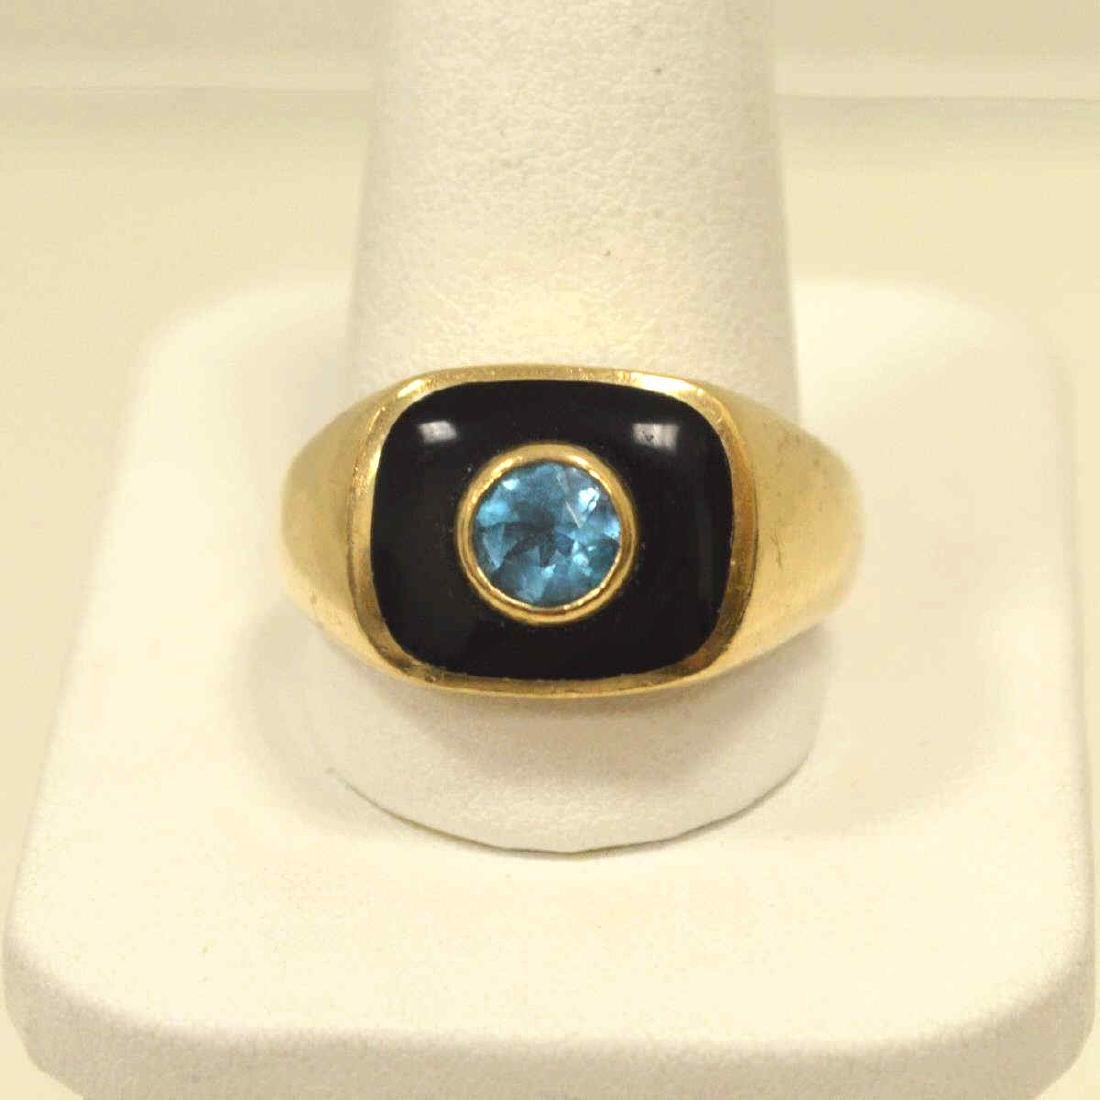 10kt yellow gold onyx and blue topaz ring